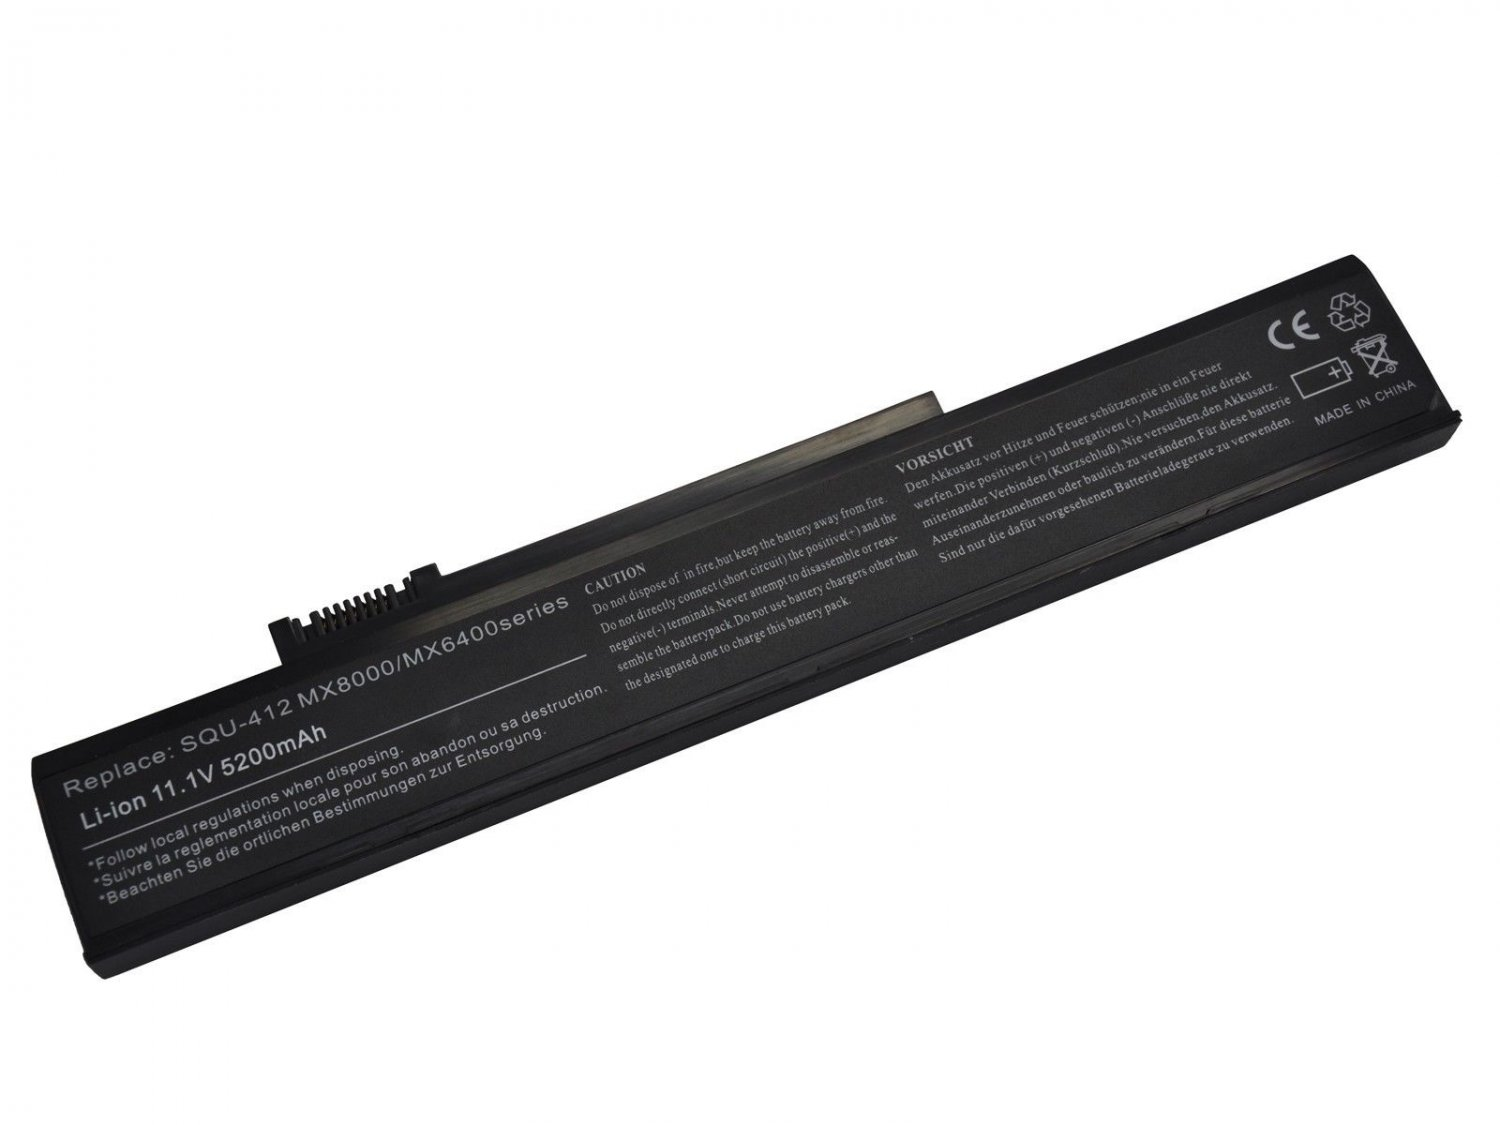 New Laptop Battery for Gateway 916C4730F AHA63224A34 AHA842240a0 MA1 6 cells